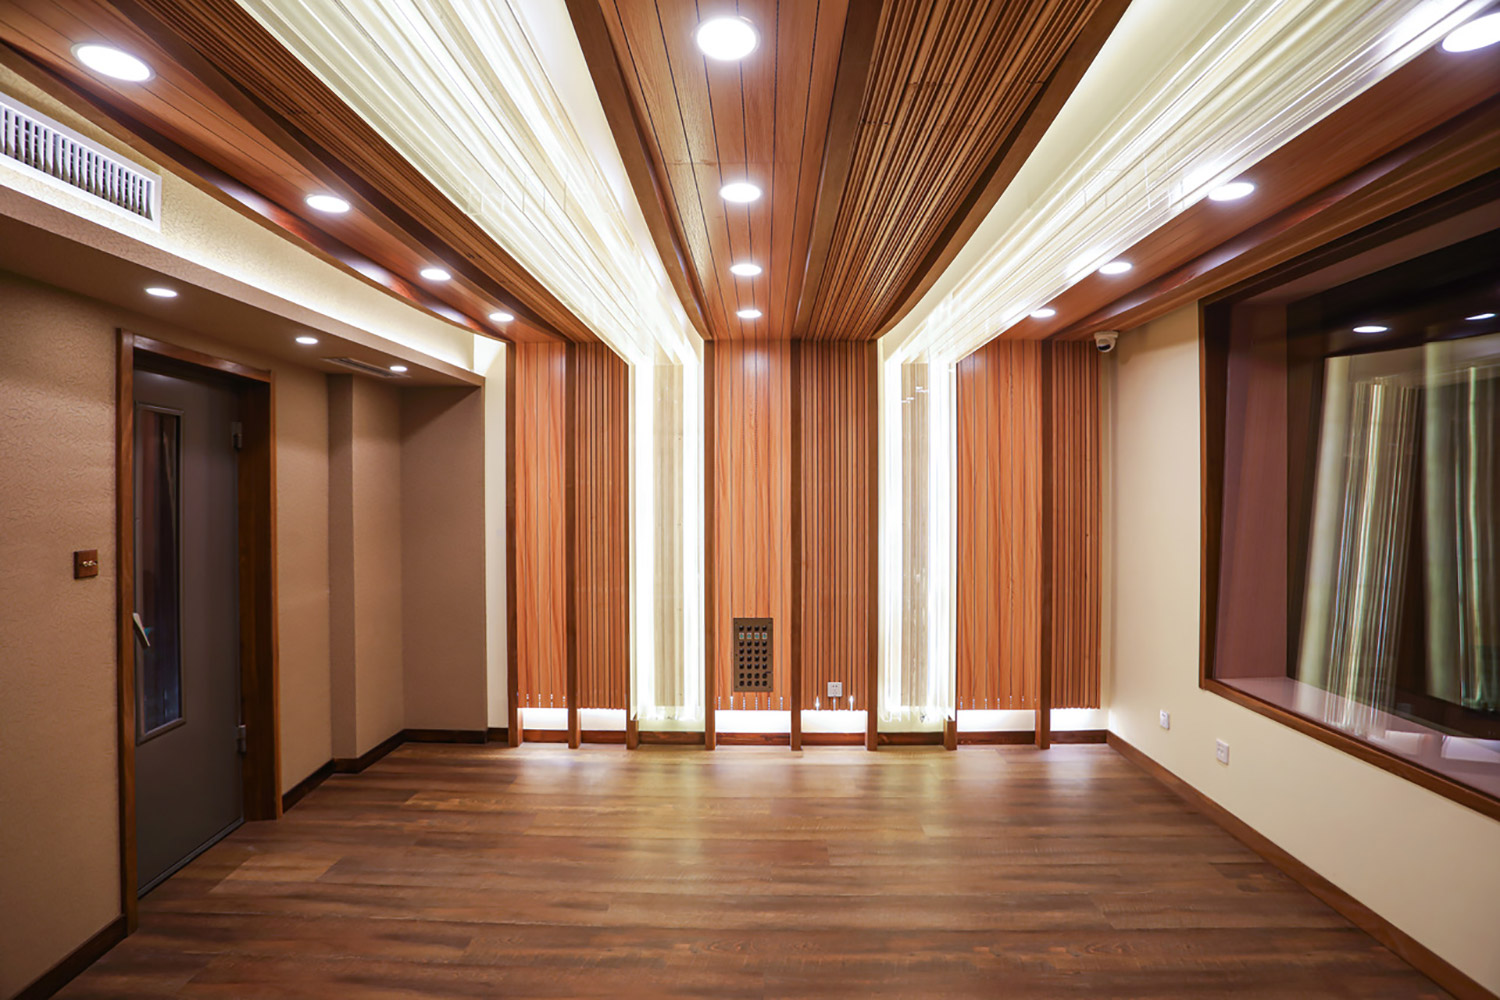 T-One Studios is the brainchild of engineers Qiwu Tan and Yi He located in Hohhot, China. WSDG's services were retained to design this modern and cool world-class recording facility. Live Room 1.